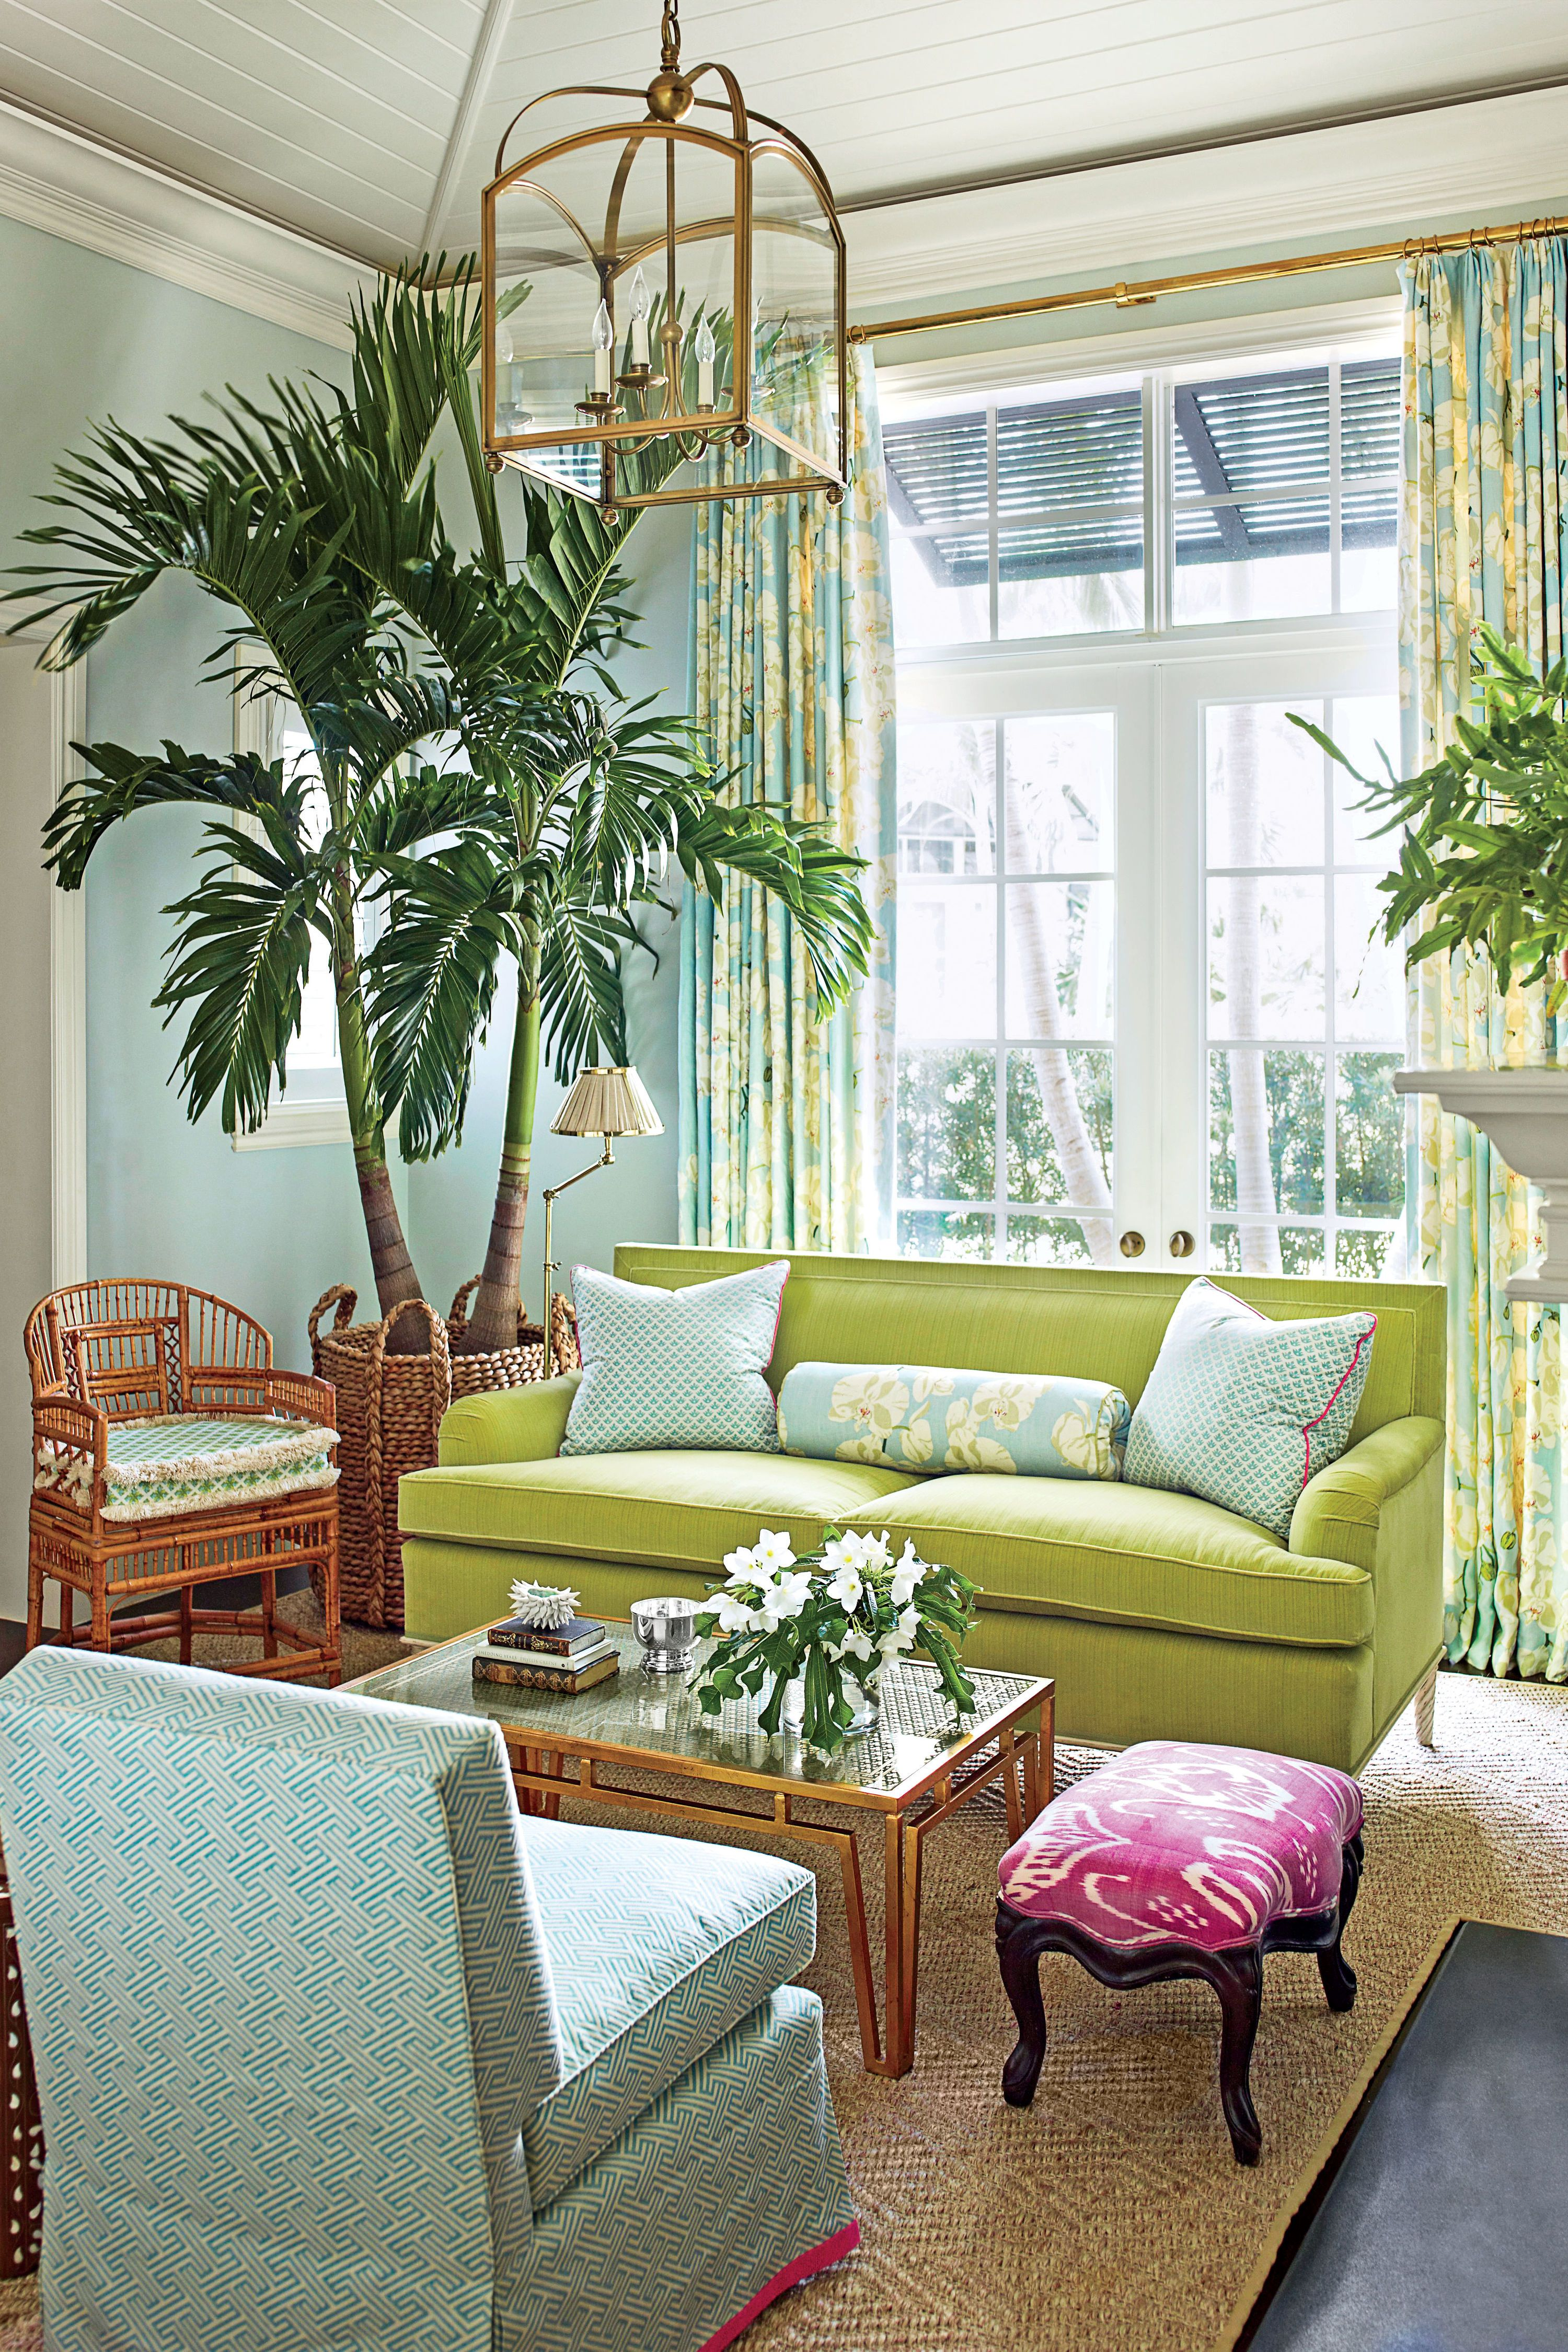 8 fresh decorating resolutions with images  tropical